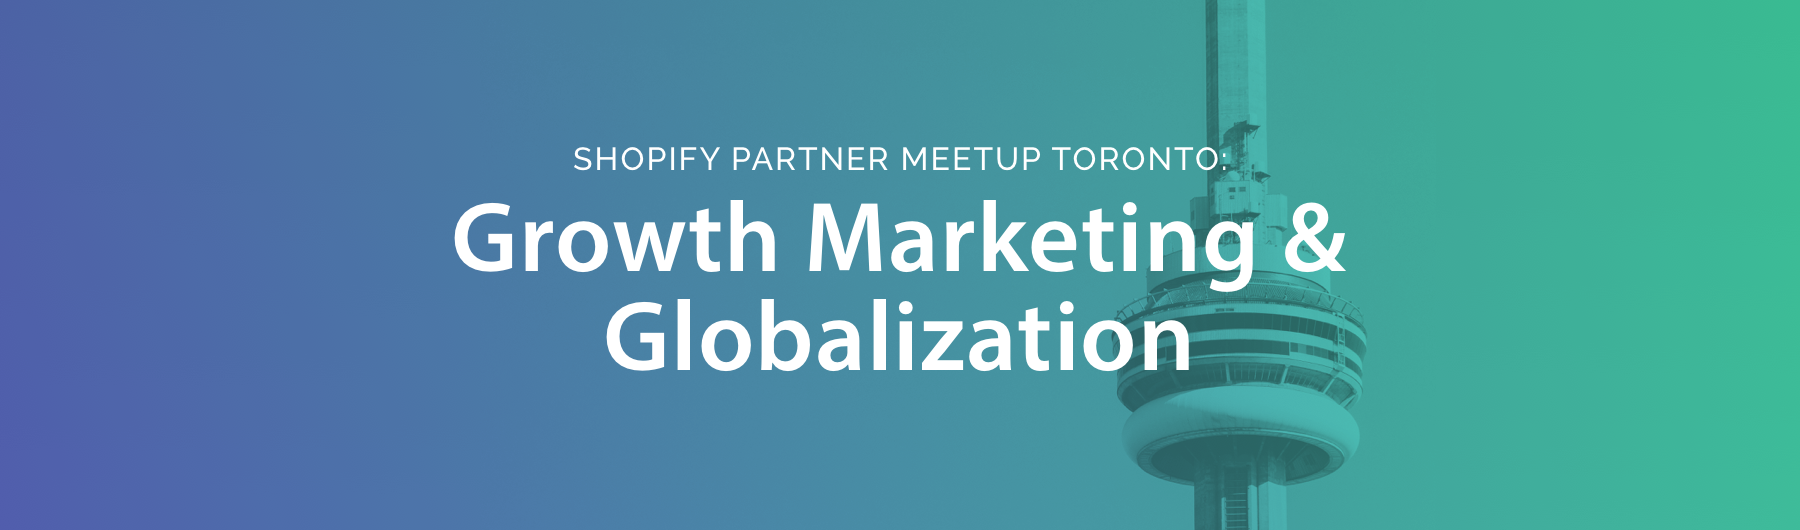 Shopify Partner Meetup Toronto: Growth Marketing & Globalization